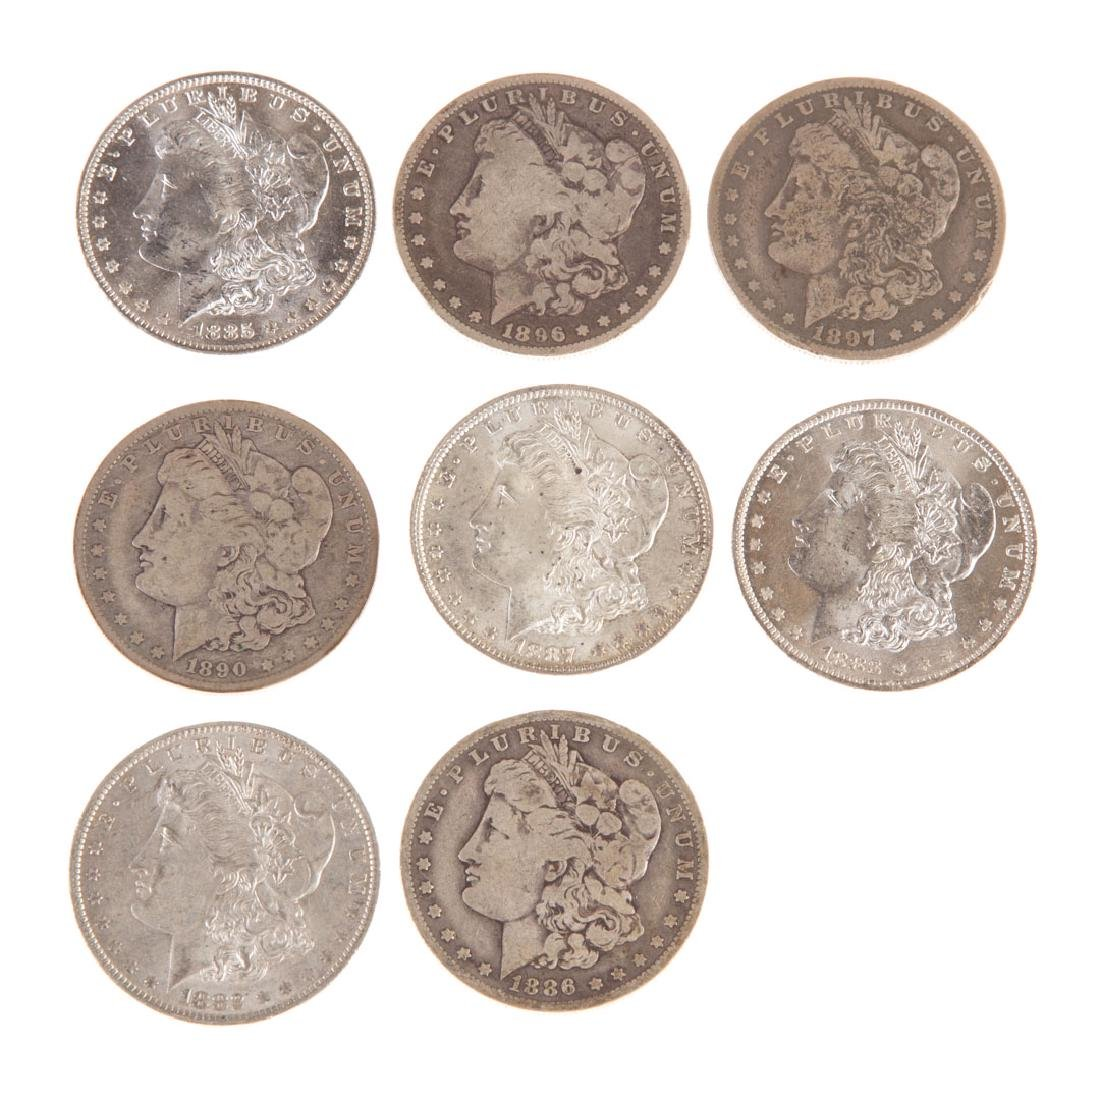 [US] 8 Morgan Silver Dollars from New Orleans